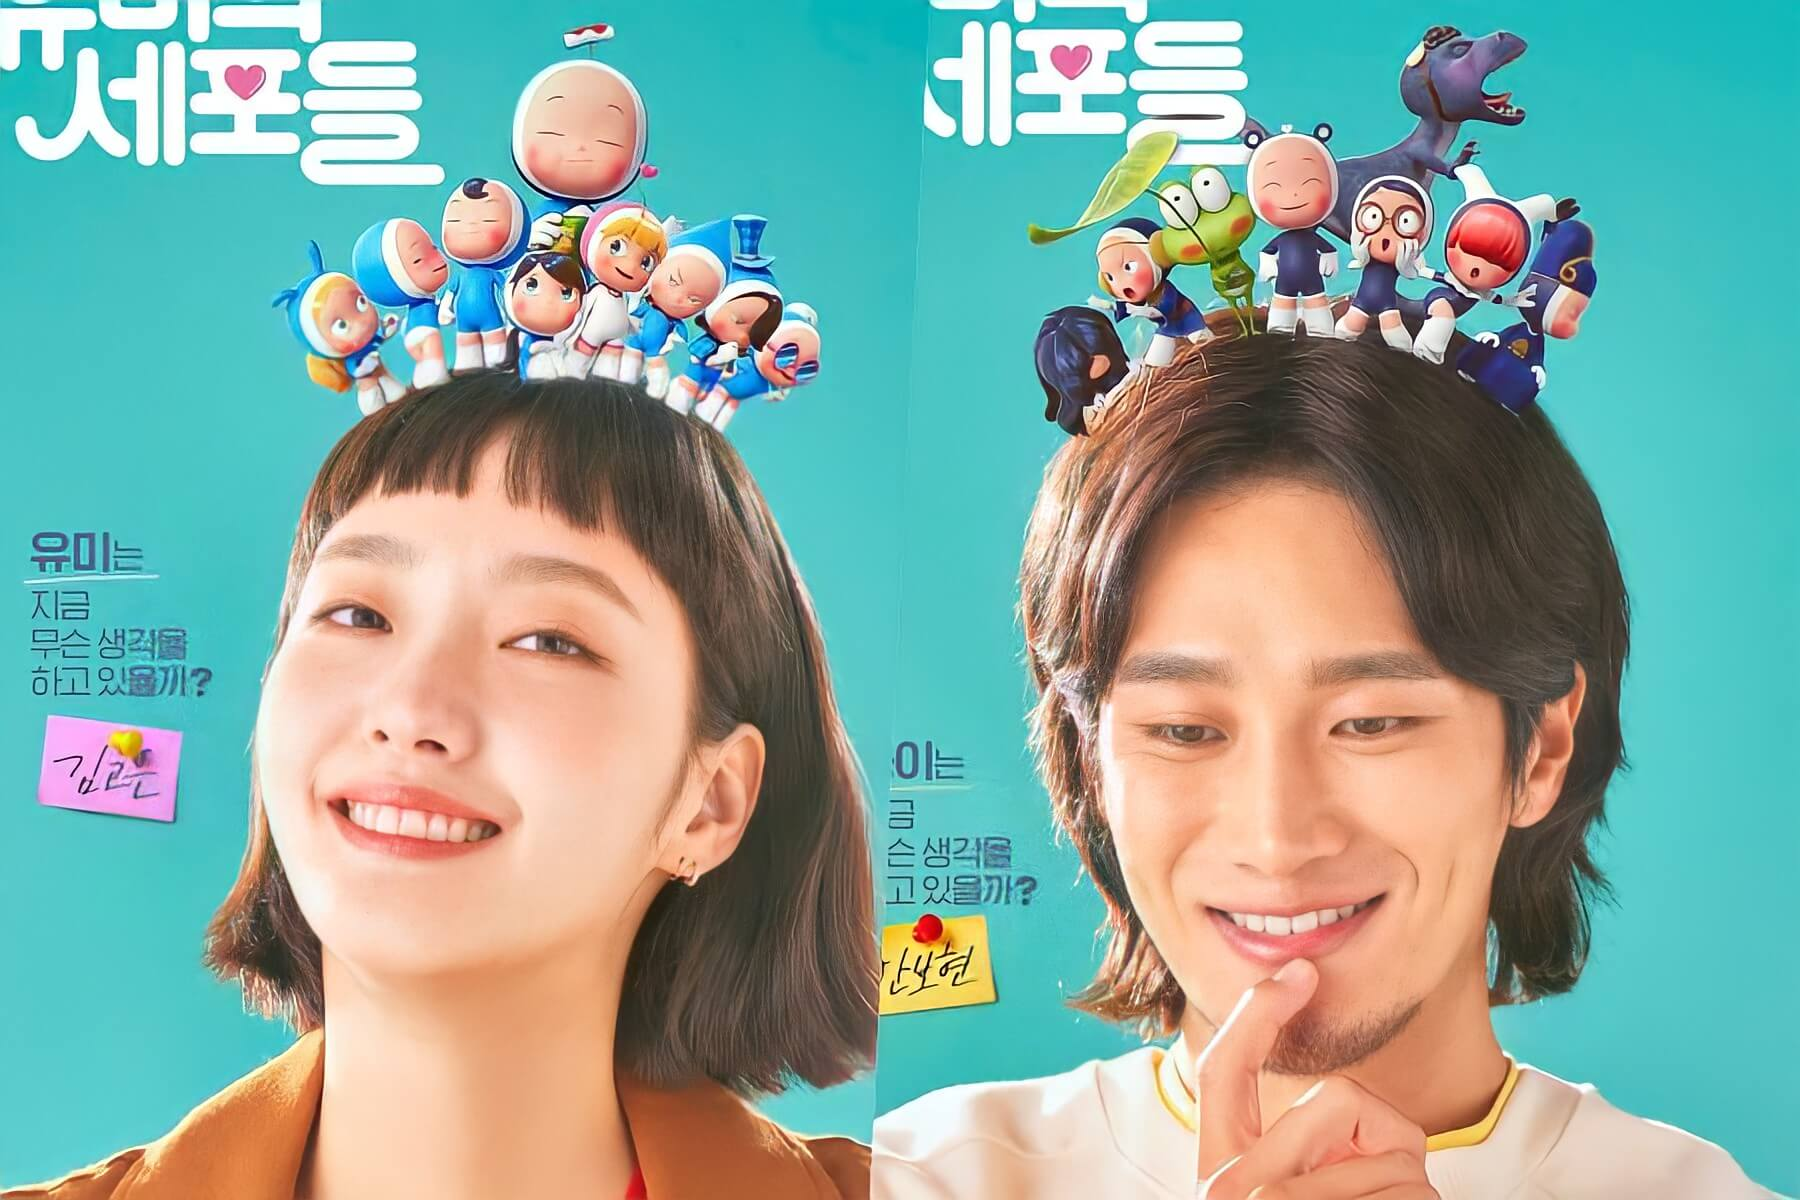 Who plays Yumi and Ku Woong in Yumi's Cells